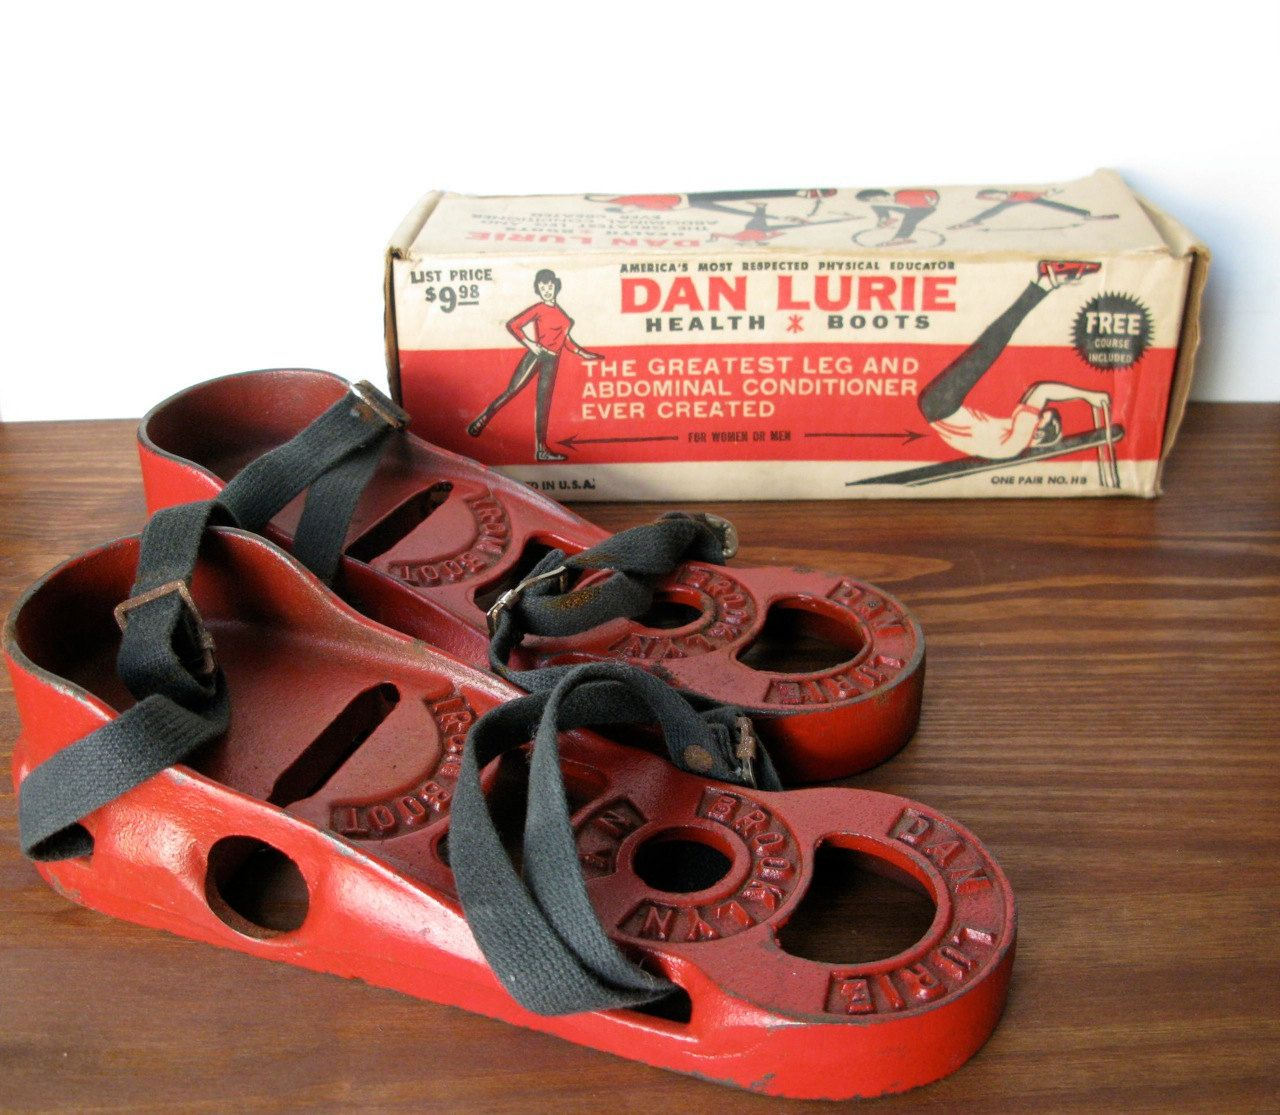 Dan lurie health boots no equipment workout great legs